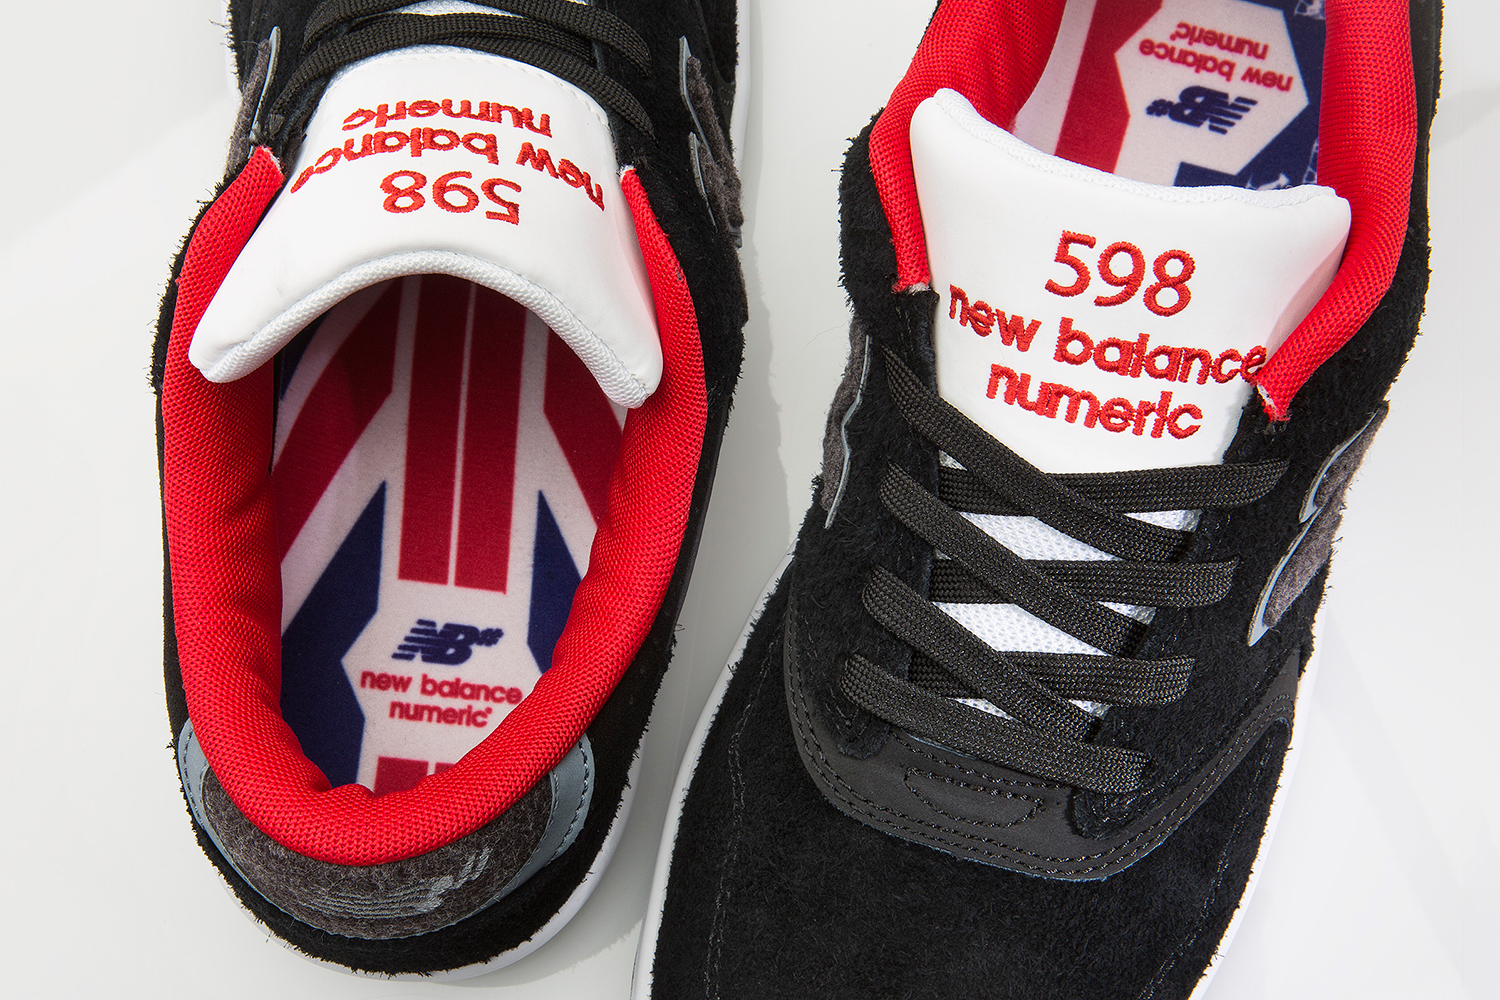 new-balance-598-998-black-sheep-05